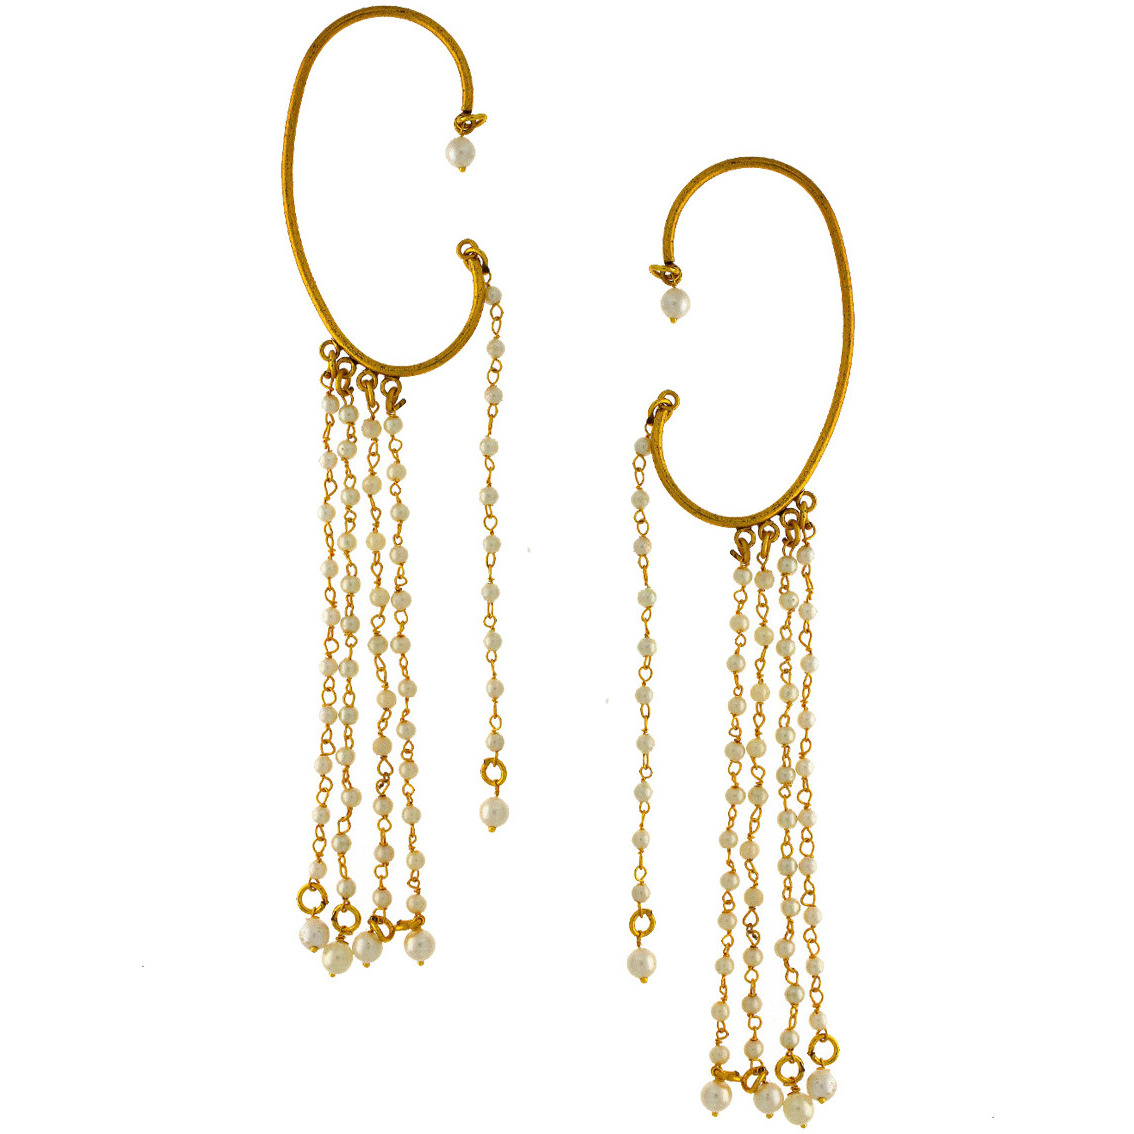 Anuradha Art Golden Finish Styled With Multiple Layers Pearl Beads Adorable Ear-Cuff Traditional Earrings For Women/Girls